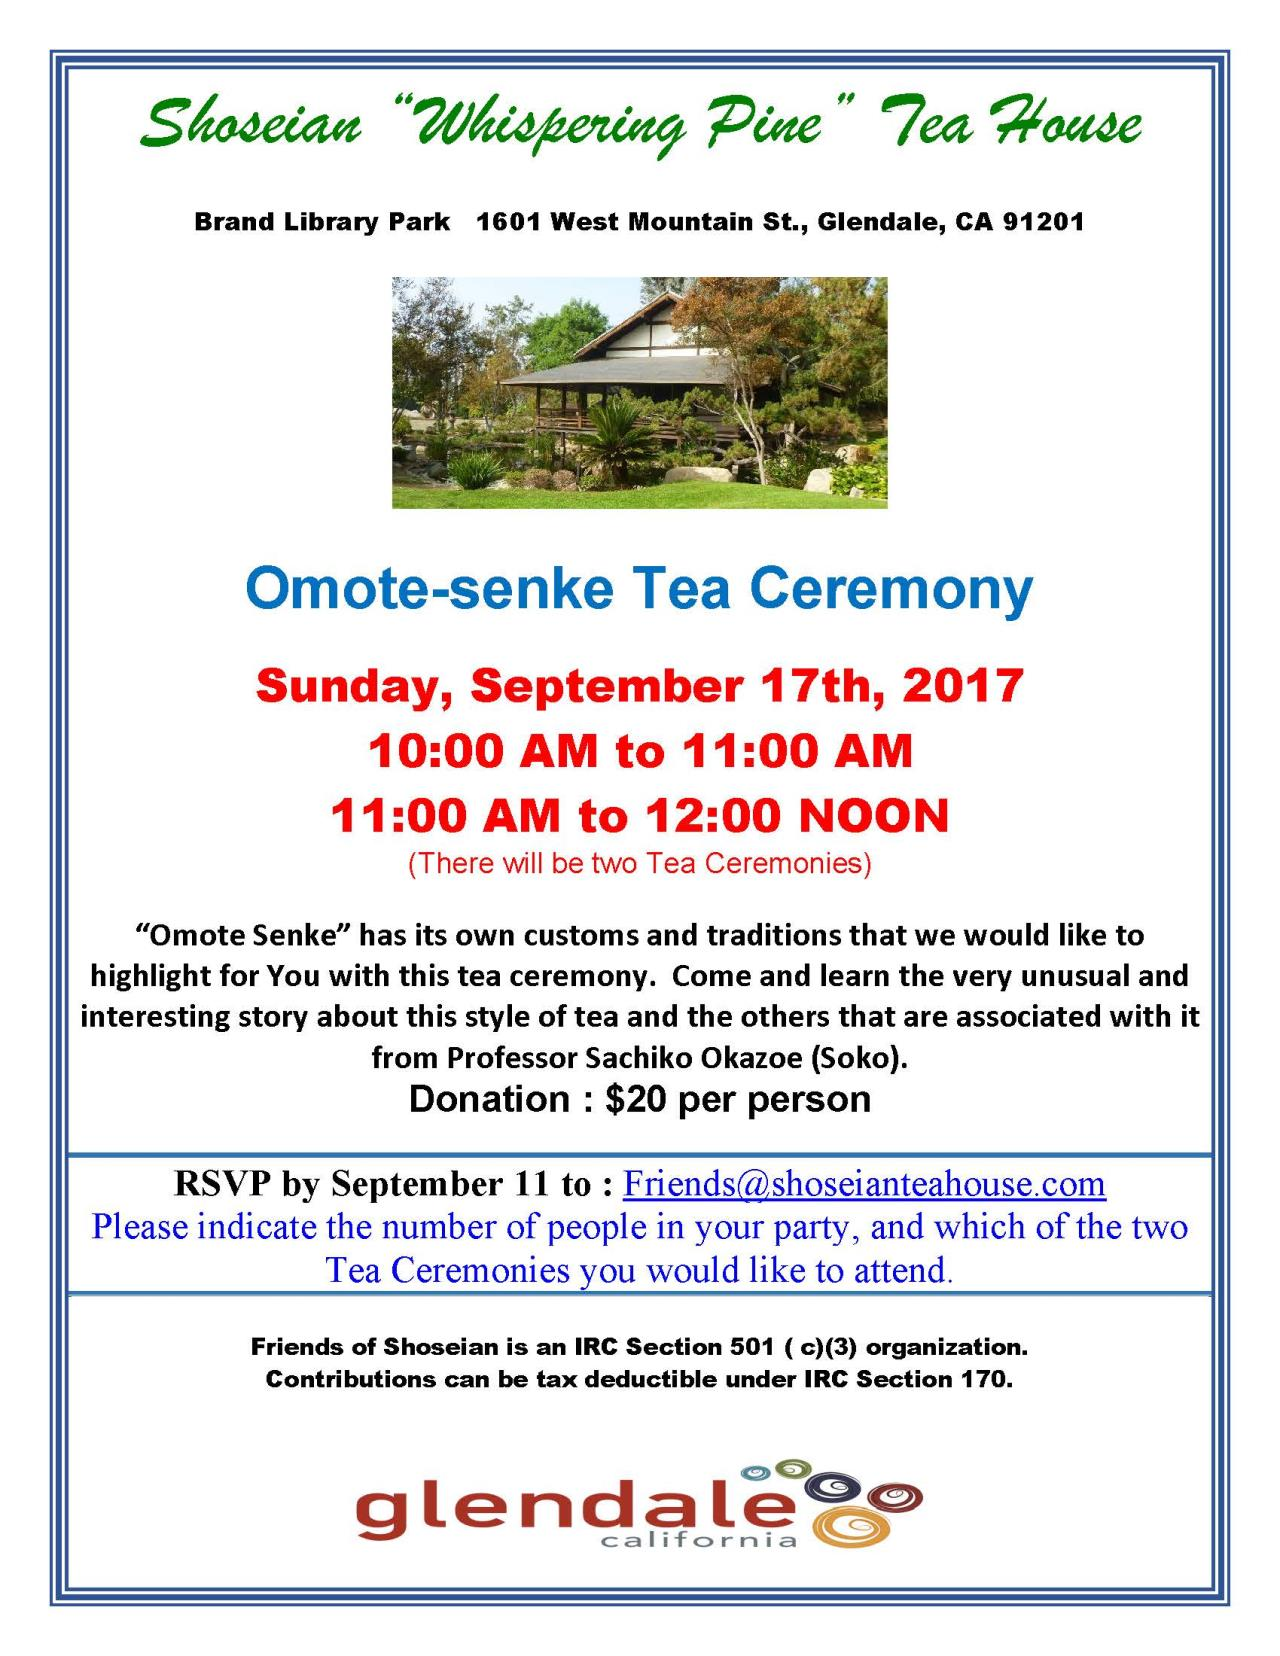 Shoseian Tea House - Omote-senke Flyer 09-17-17 V1